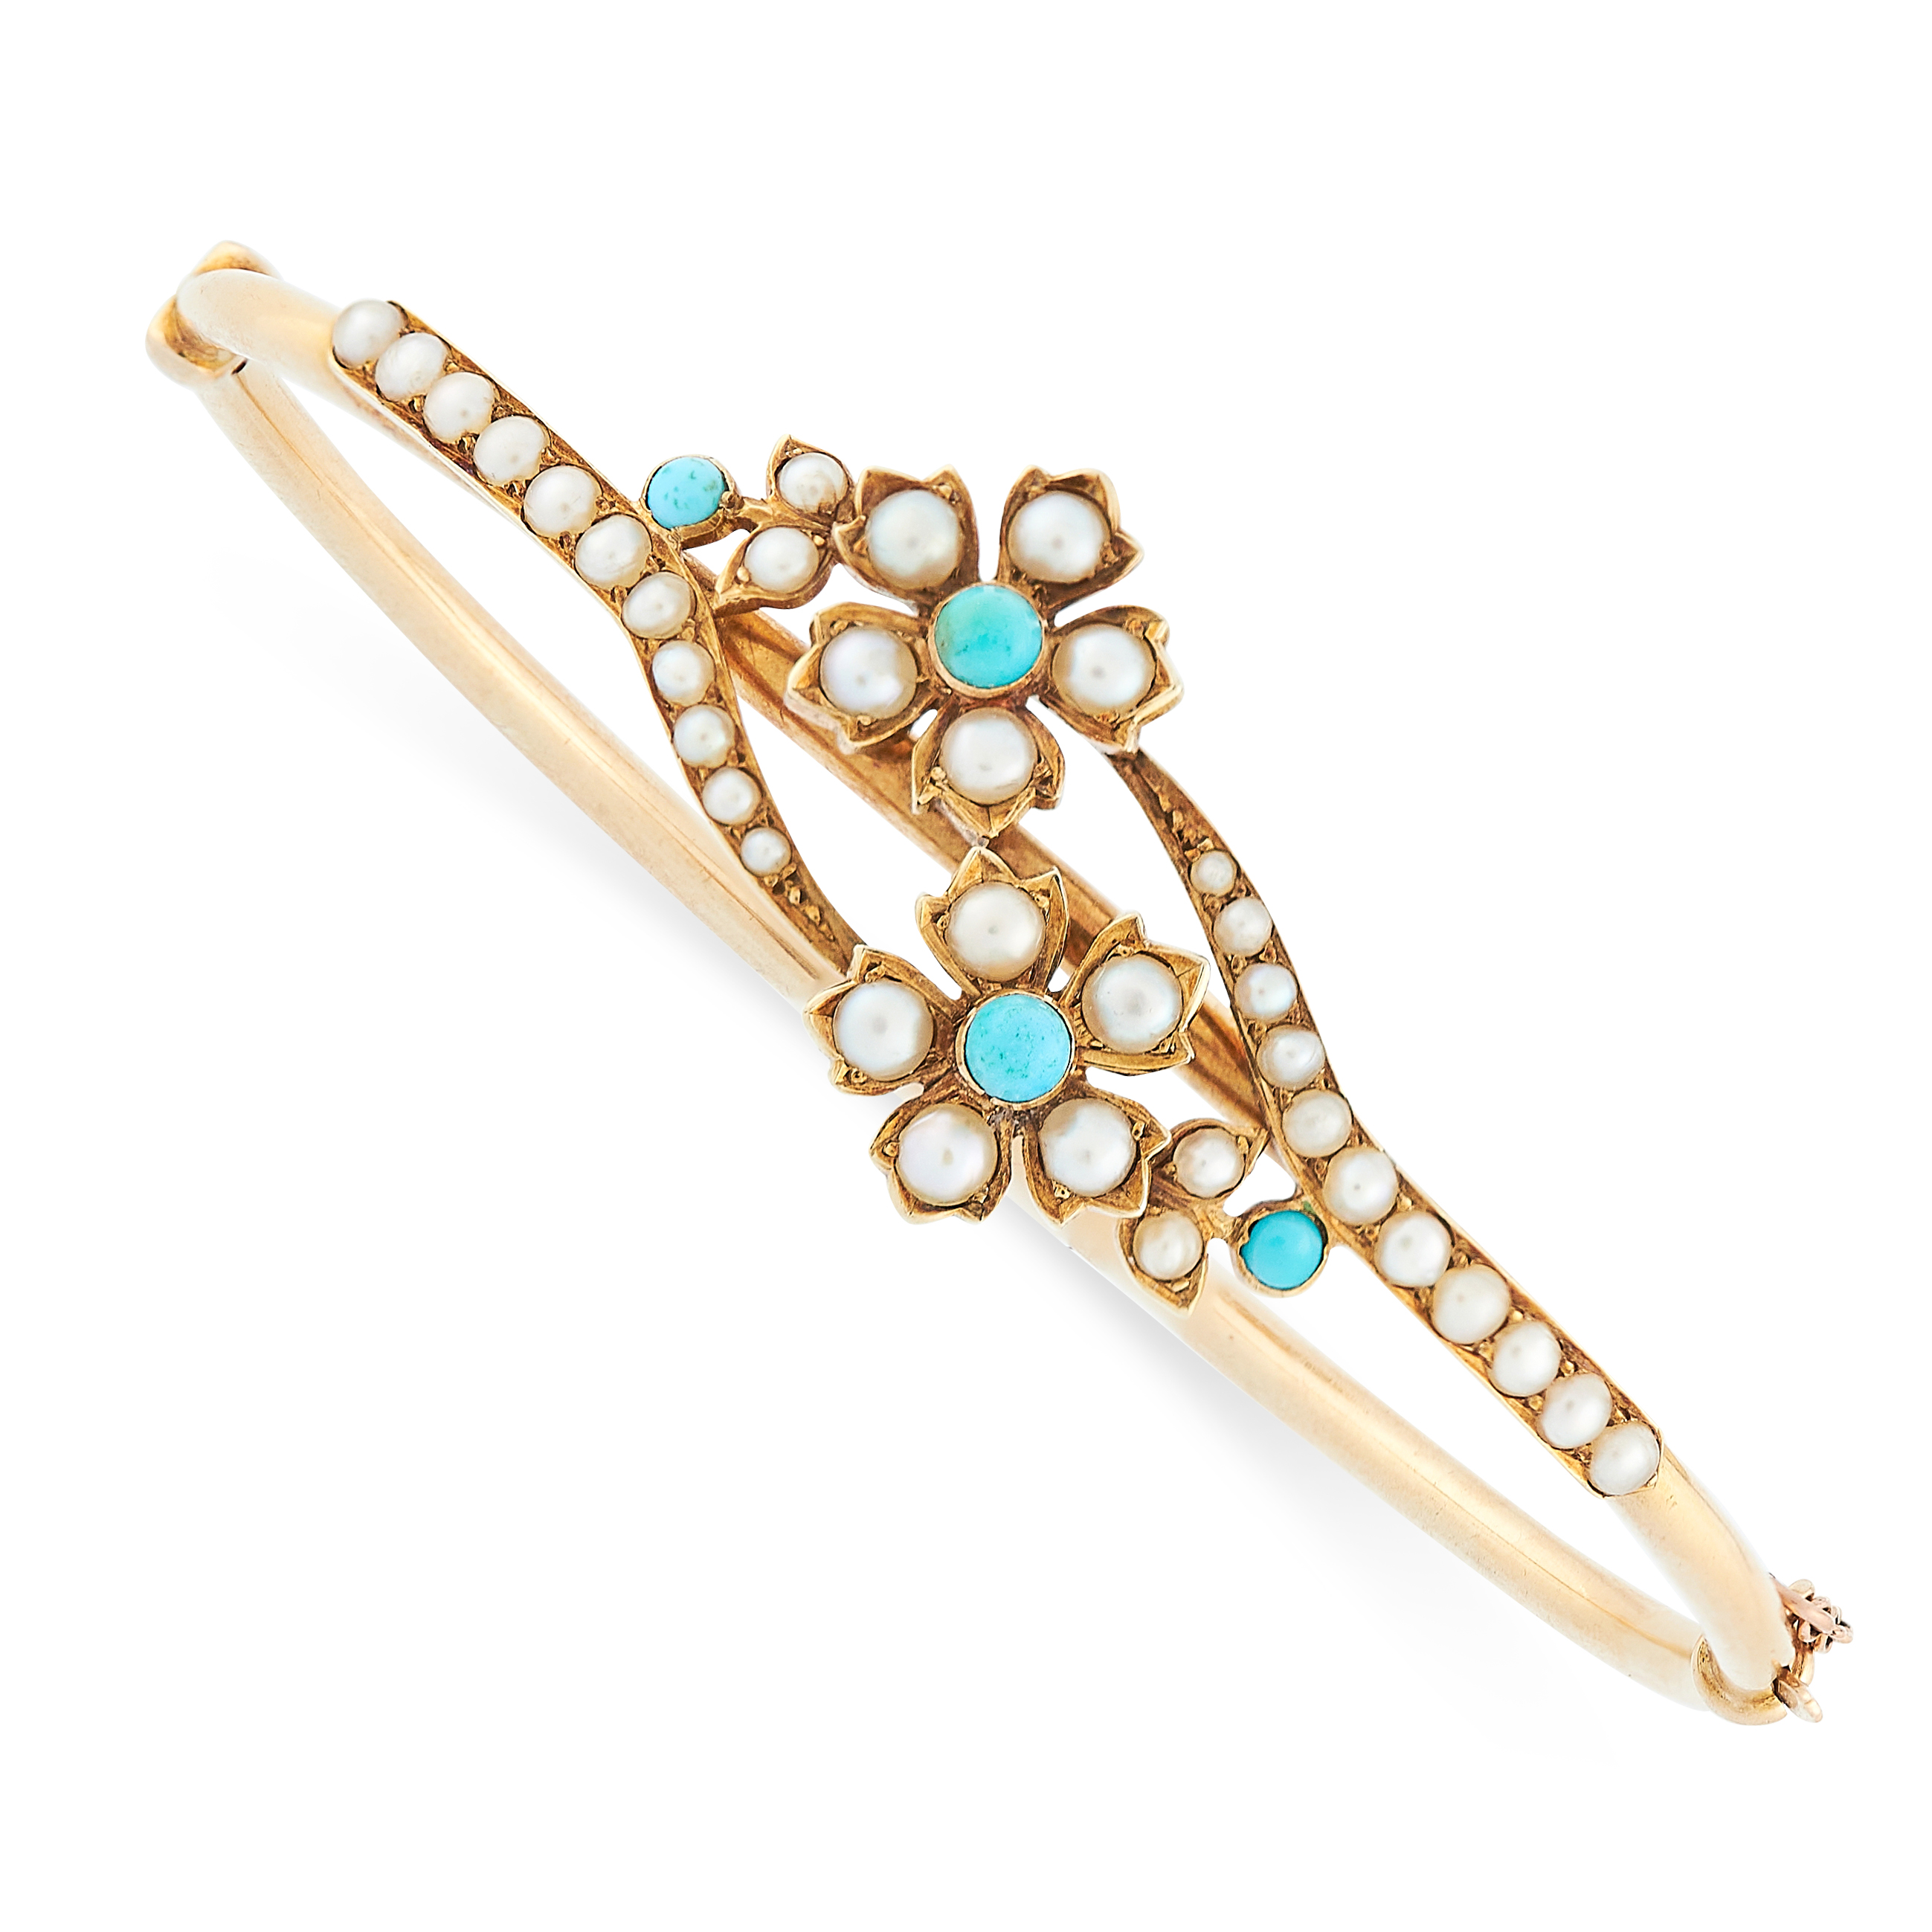 ANTIQUE TURQUOISE AND PEARL BANGLE, 19TH CENTURY in 15ct yellow gold, designed with foliate